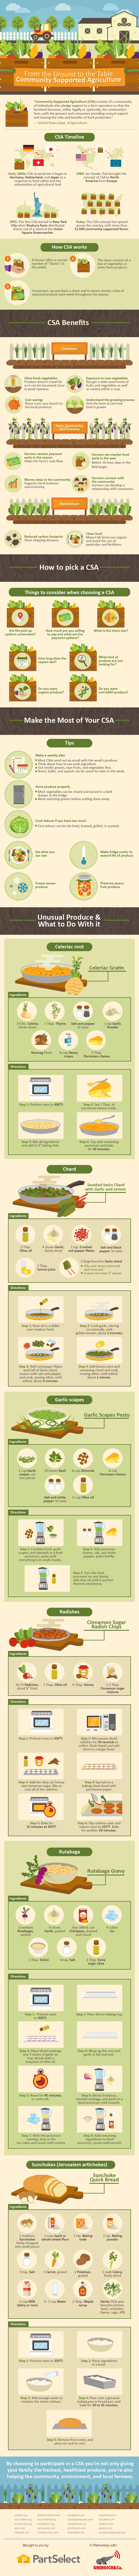 Community Supported Agriculture: How To Get The Freshest Food on Your Table - Infographic